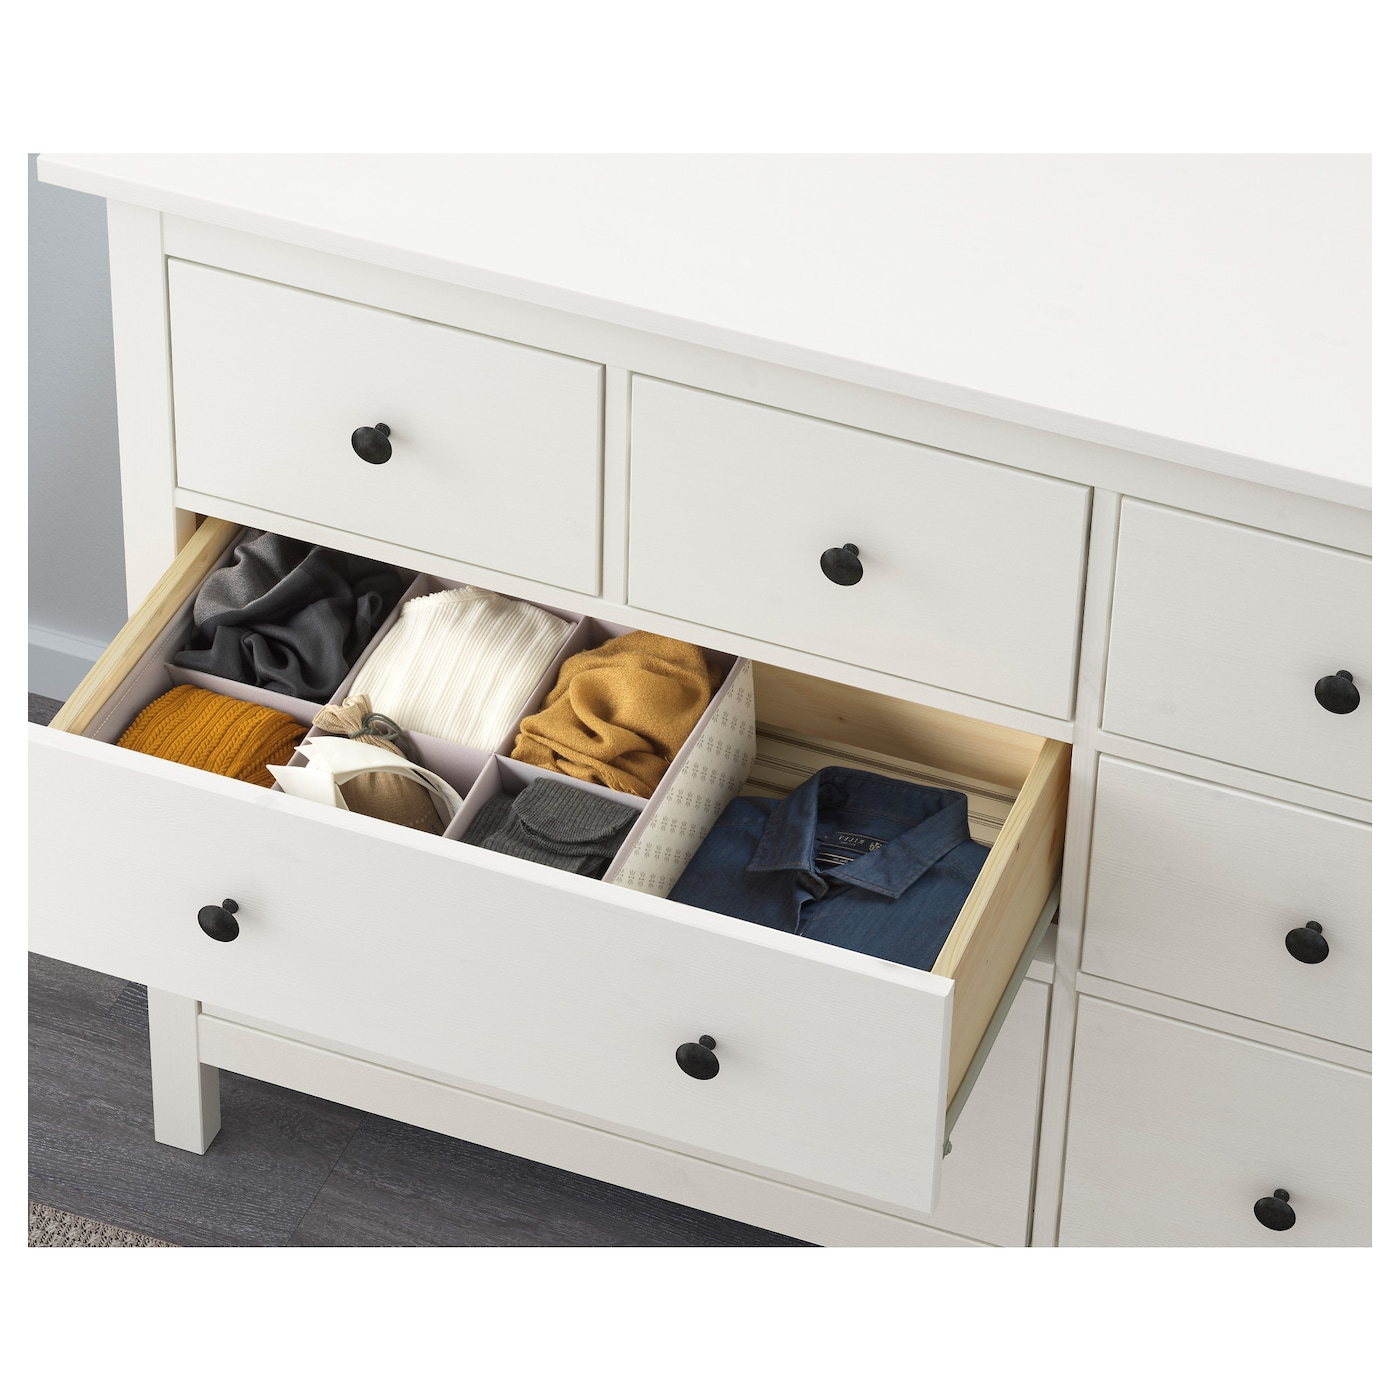 Kommode ikea hemnes  HEMNES Chest of 8 drawers White stain 160x96 cm - IKEA